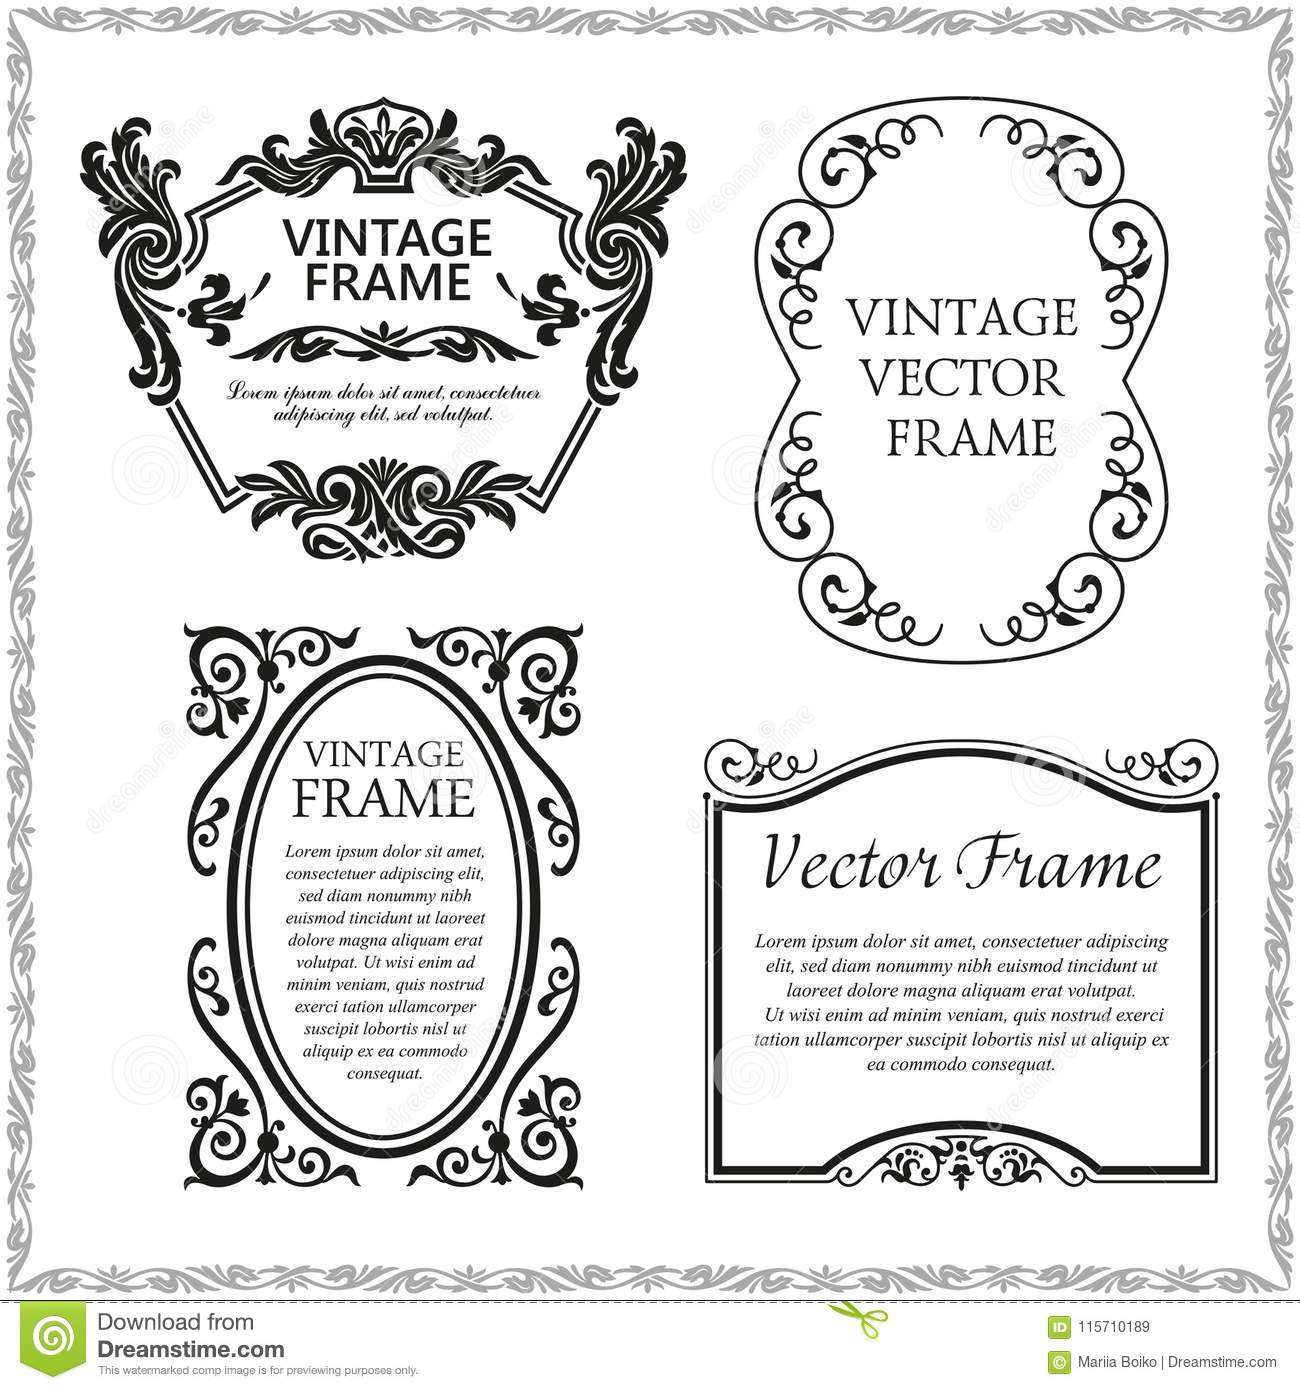 Vintage Decorative Frames Set Stock Vector - Illustration of ...